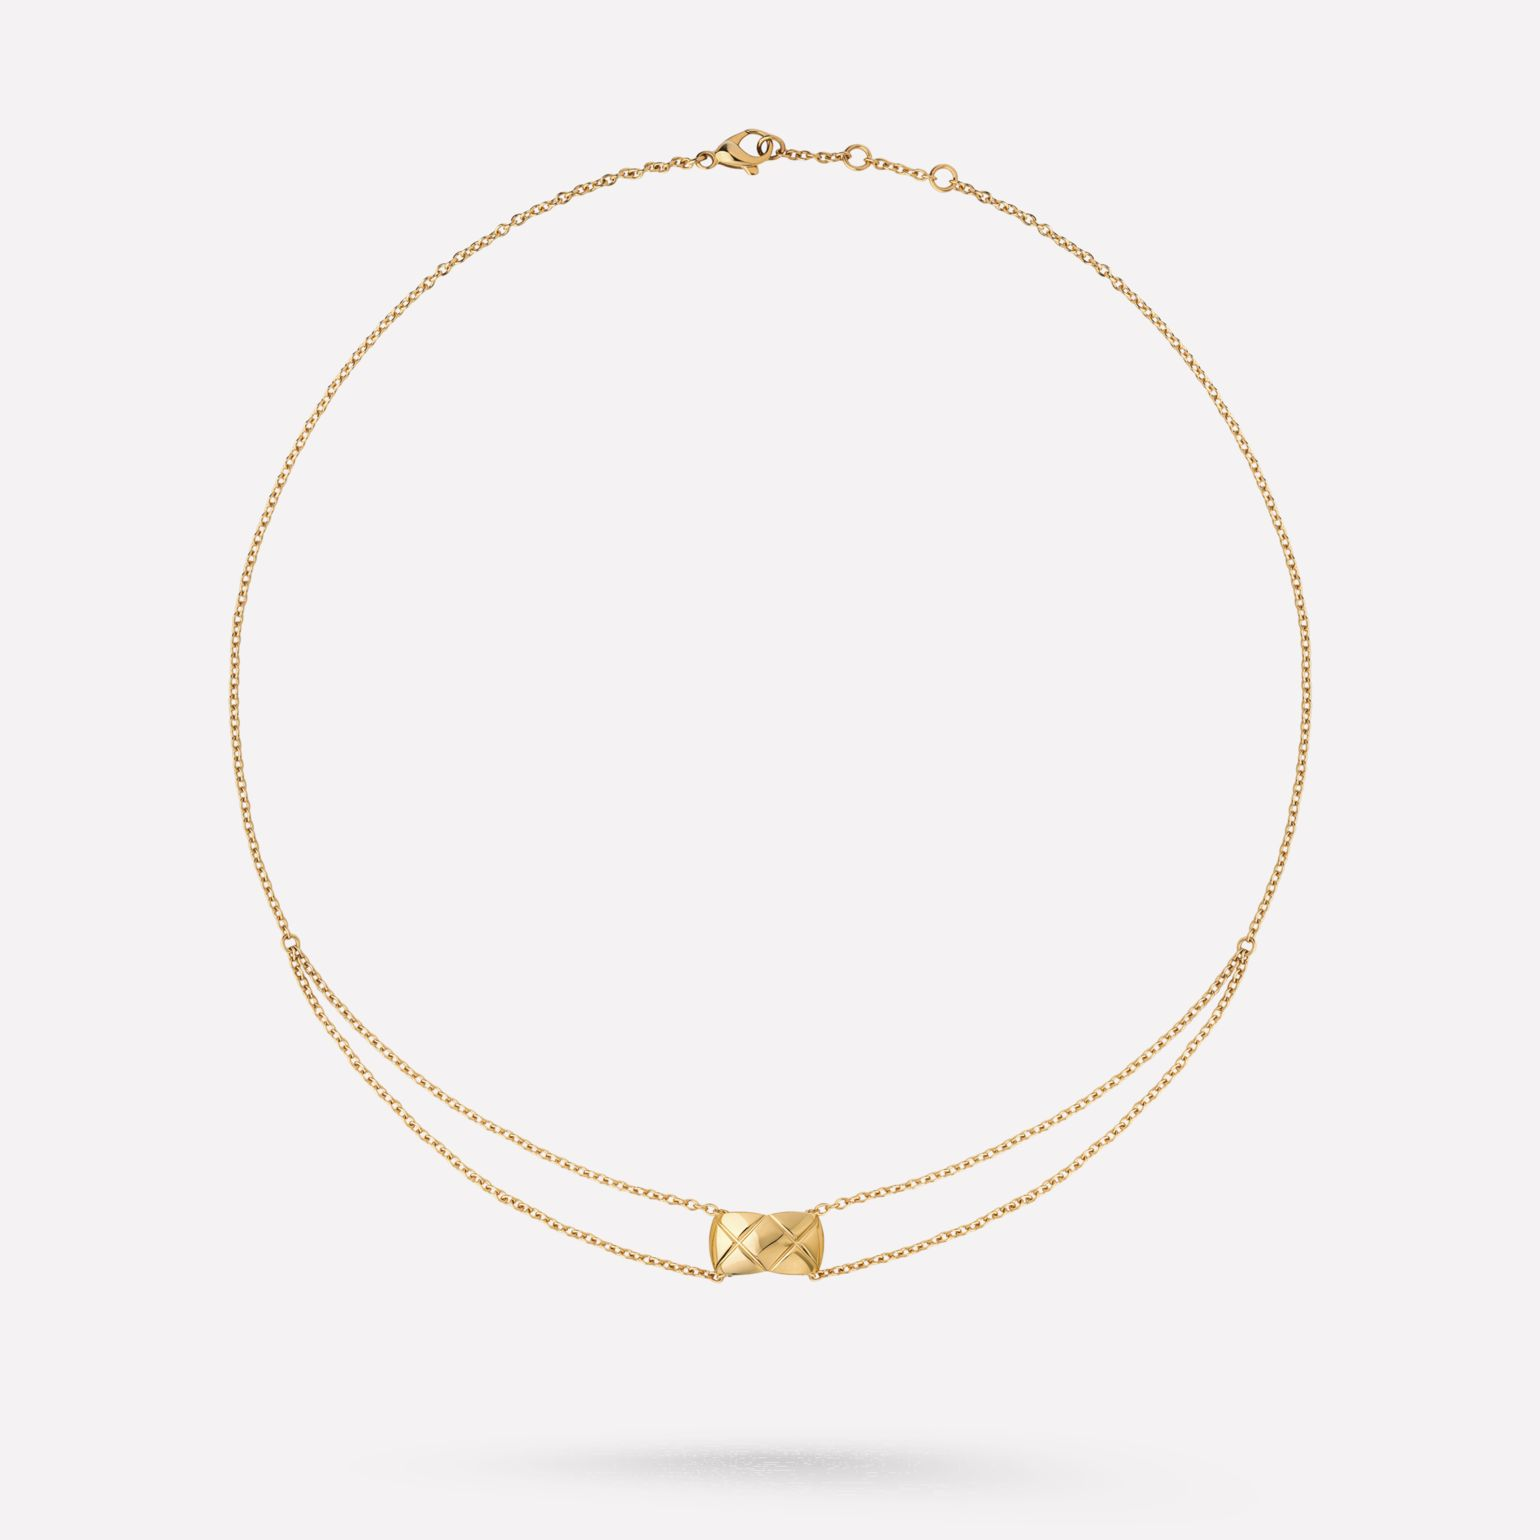 Coco Crush necklace Quilted motif, 18K yellow gold